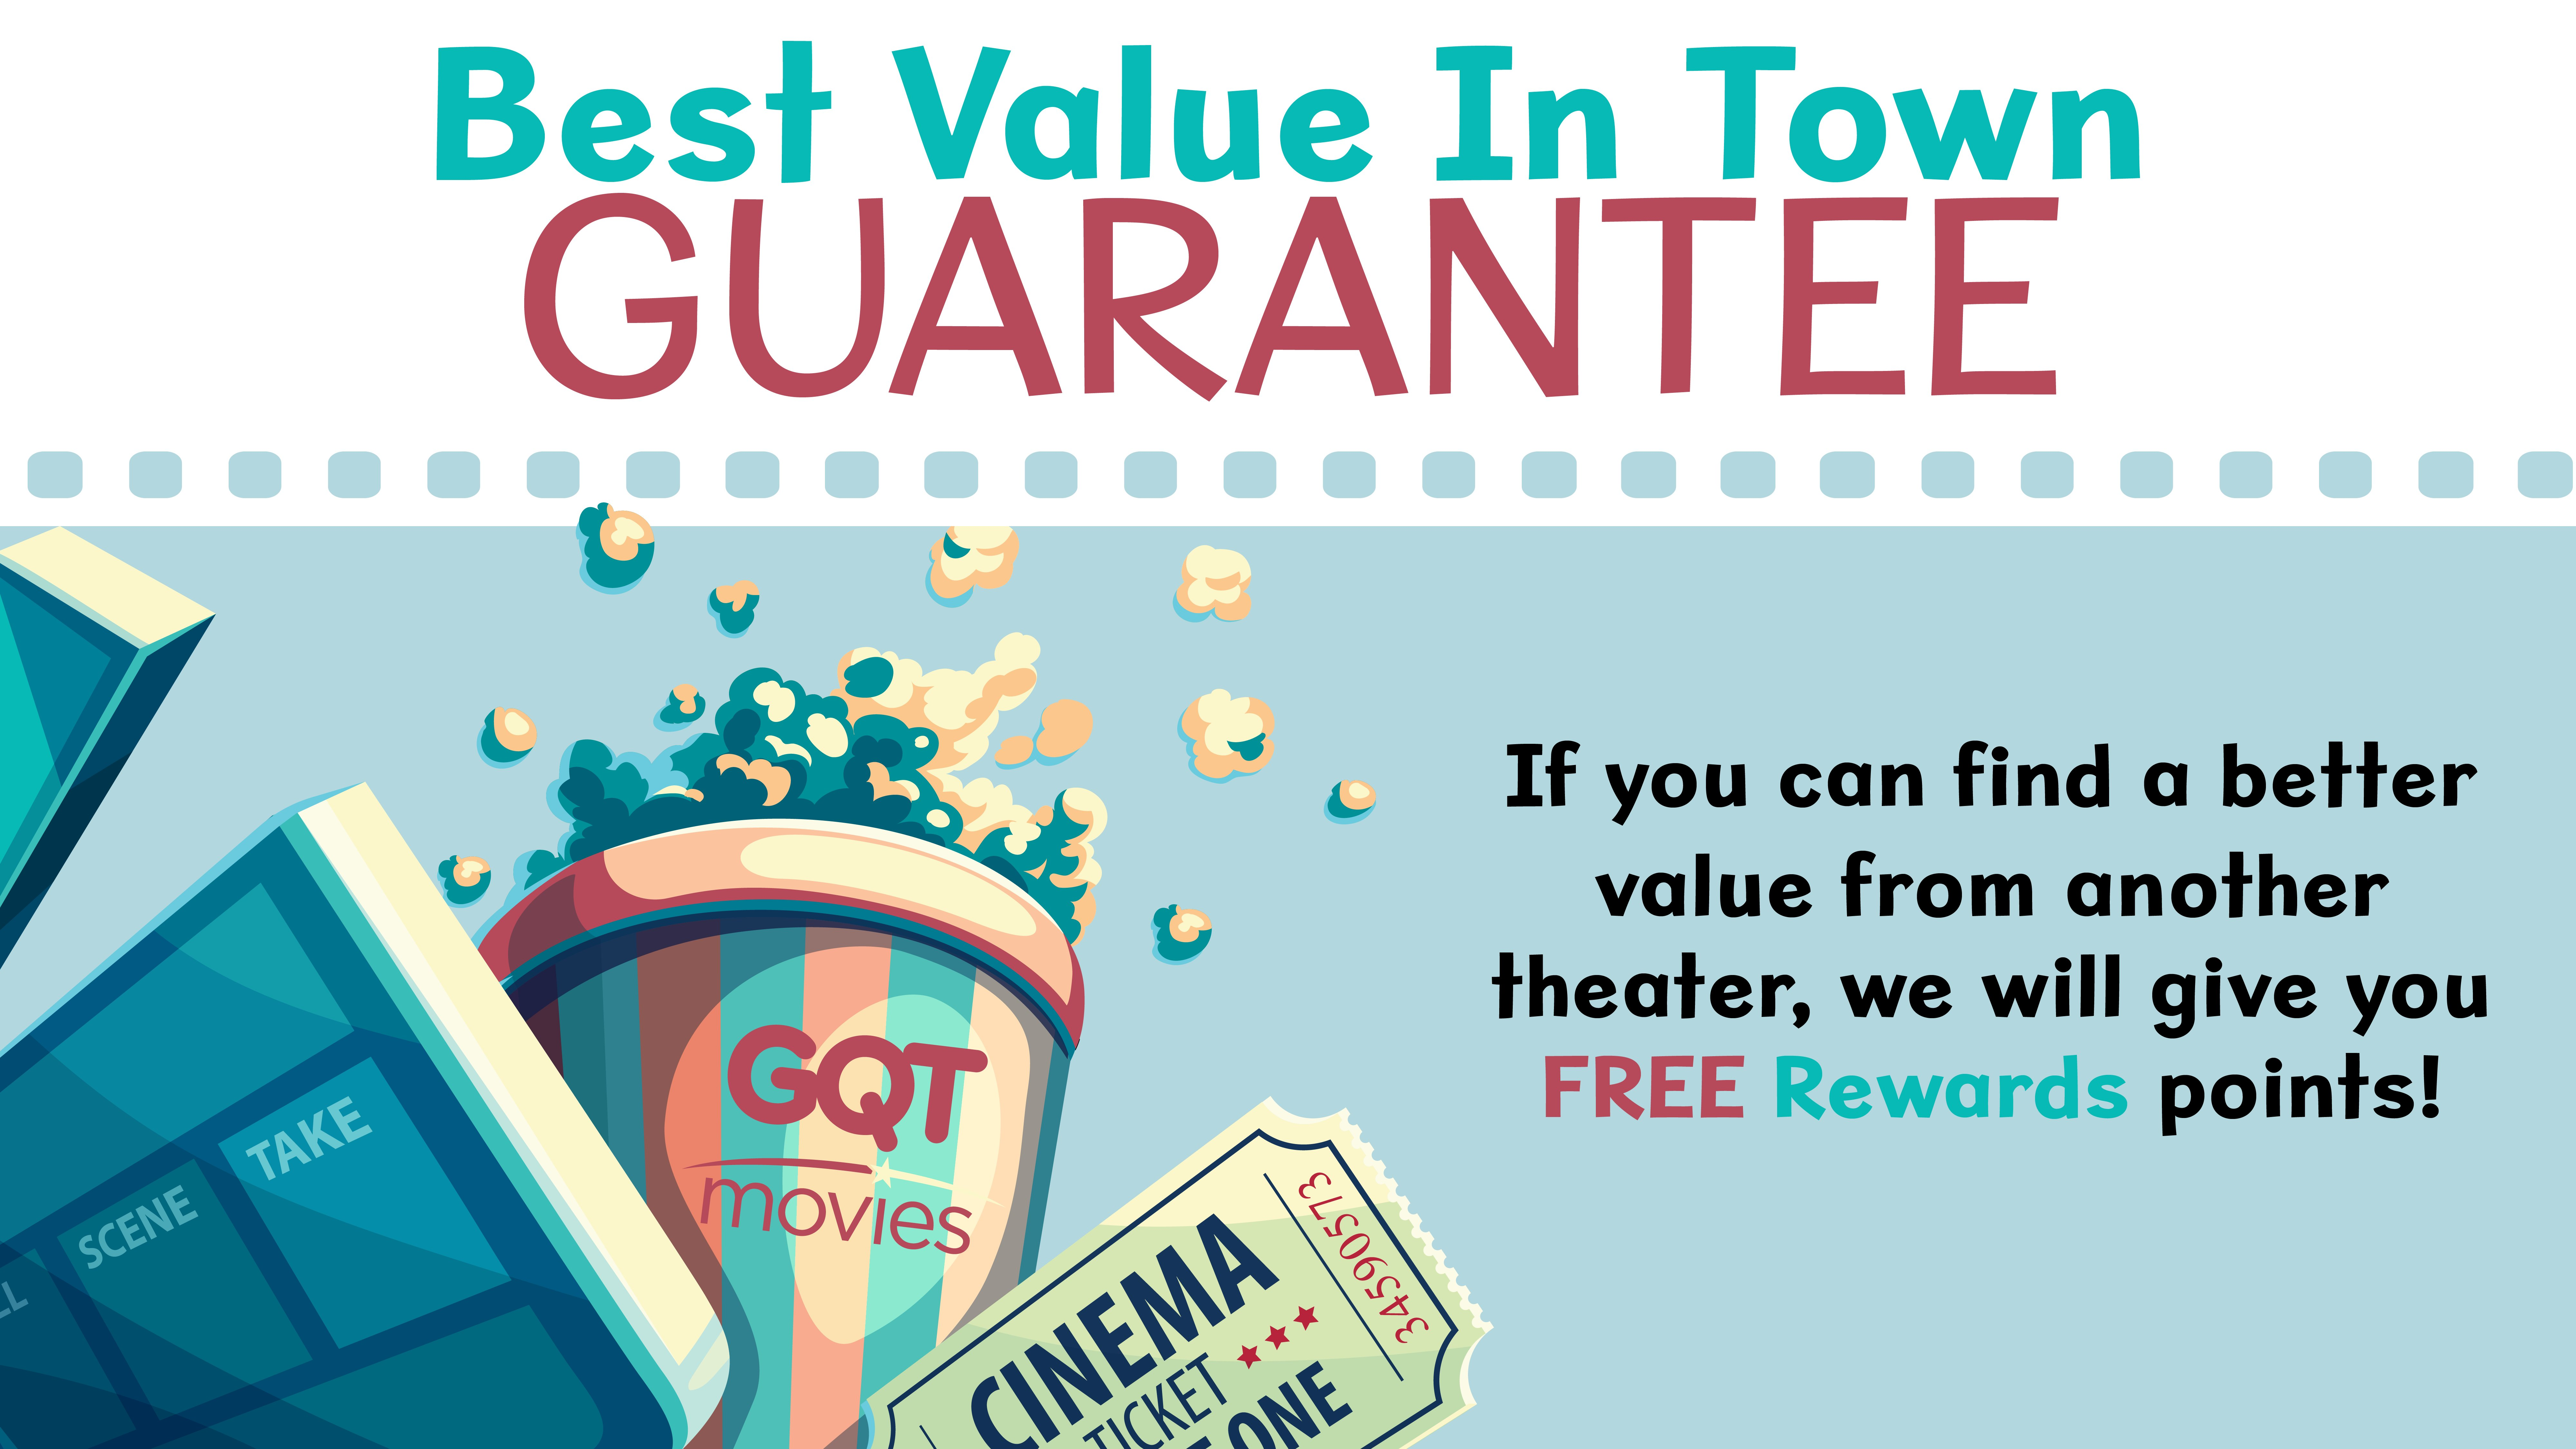 Best Value In Town Guarantee